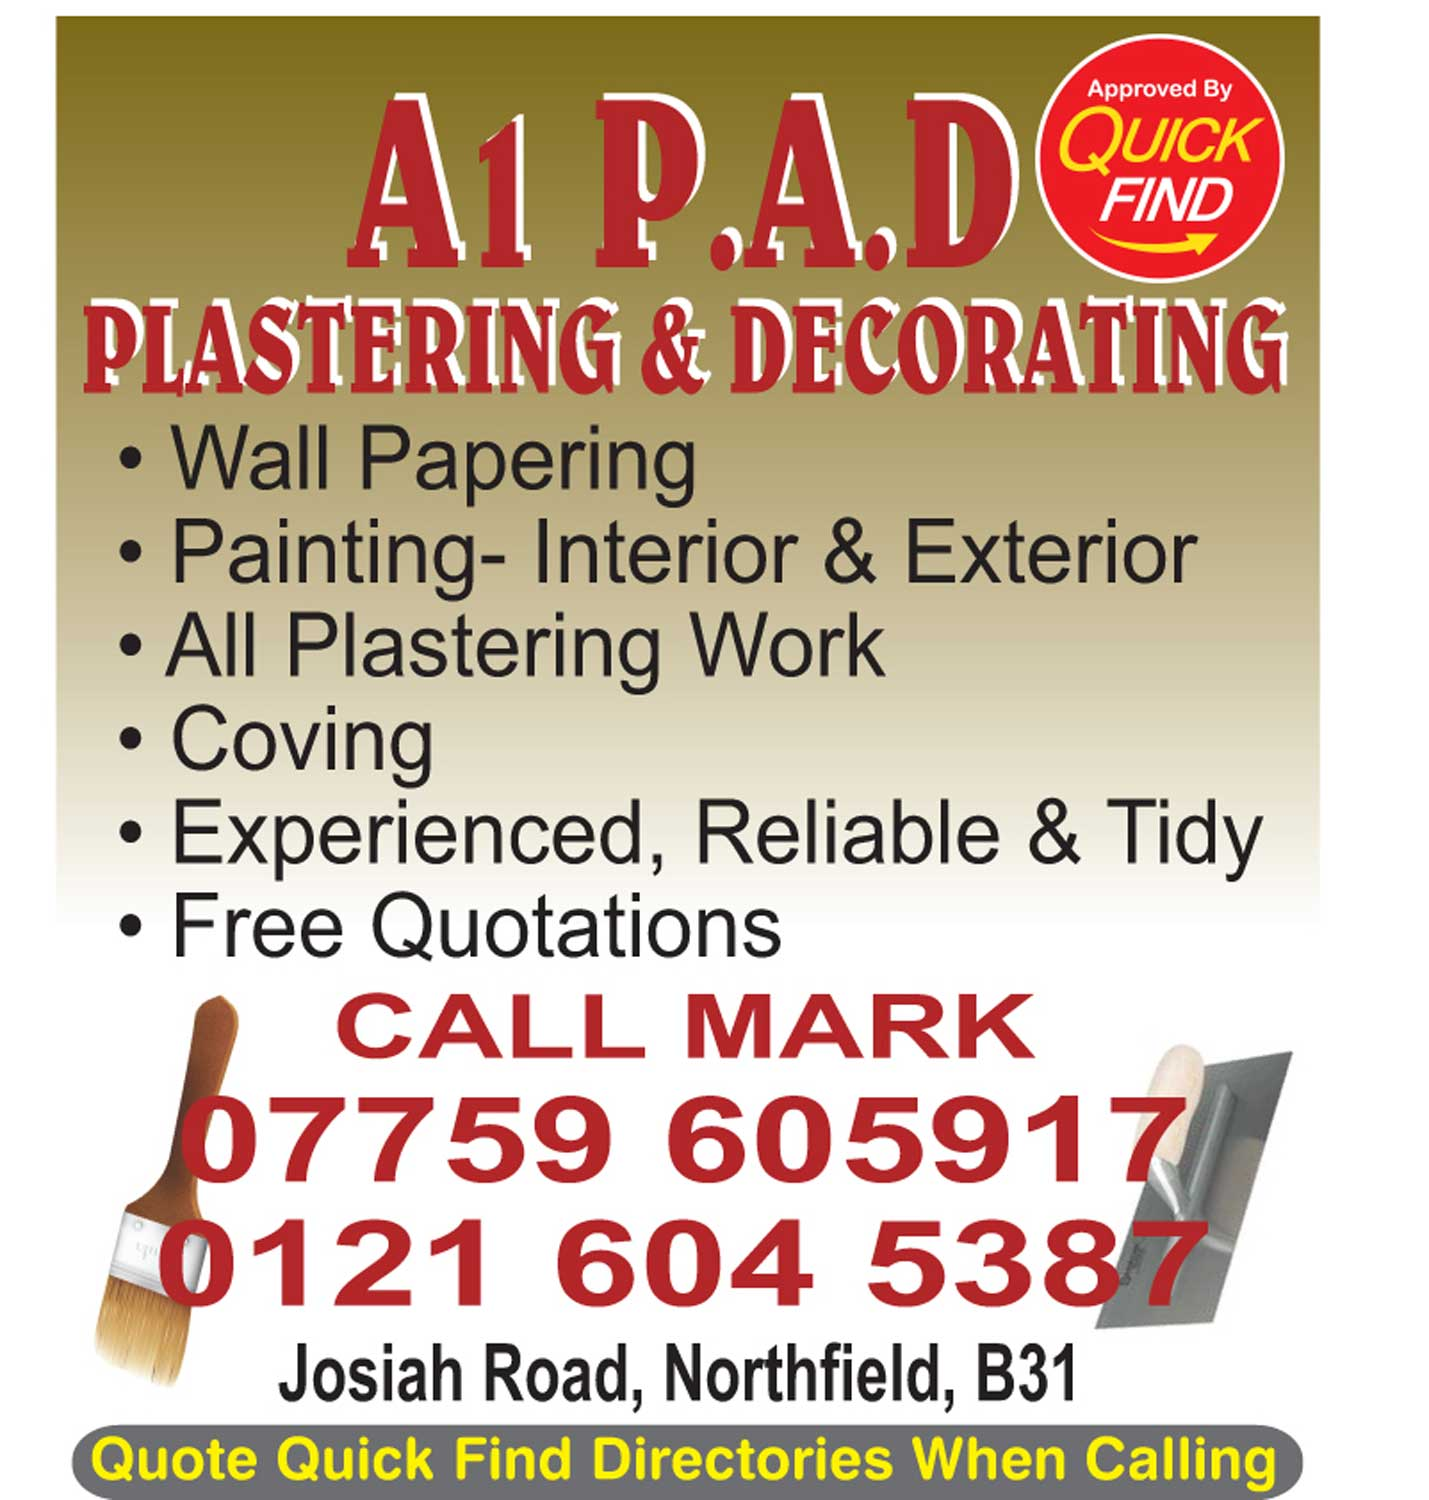 A1 PAD Plastering and Decorating